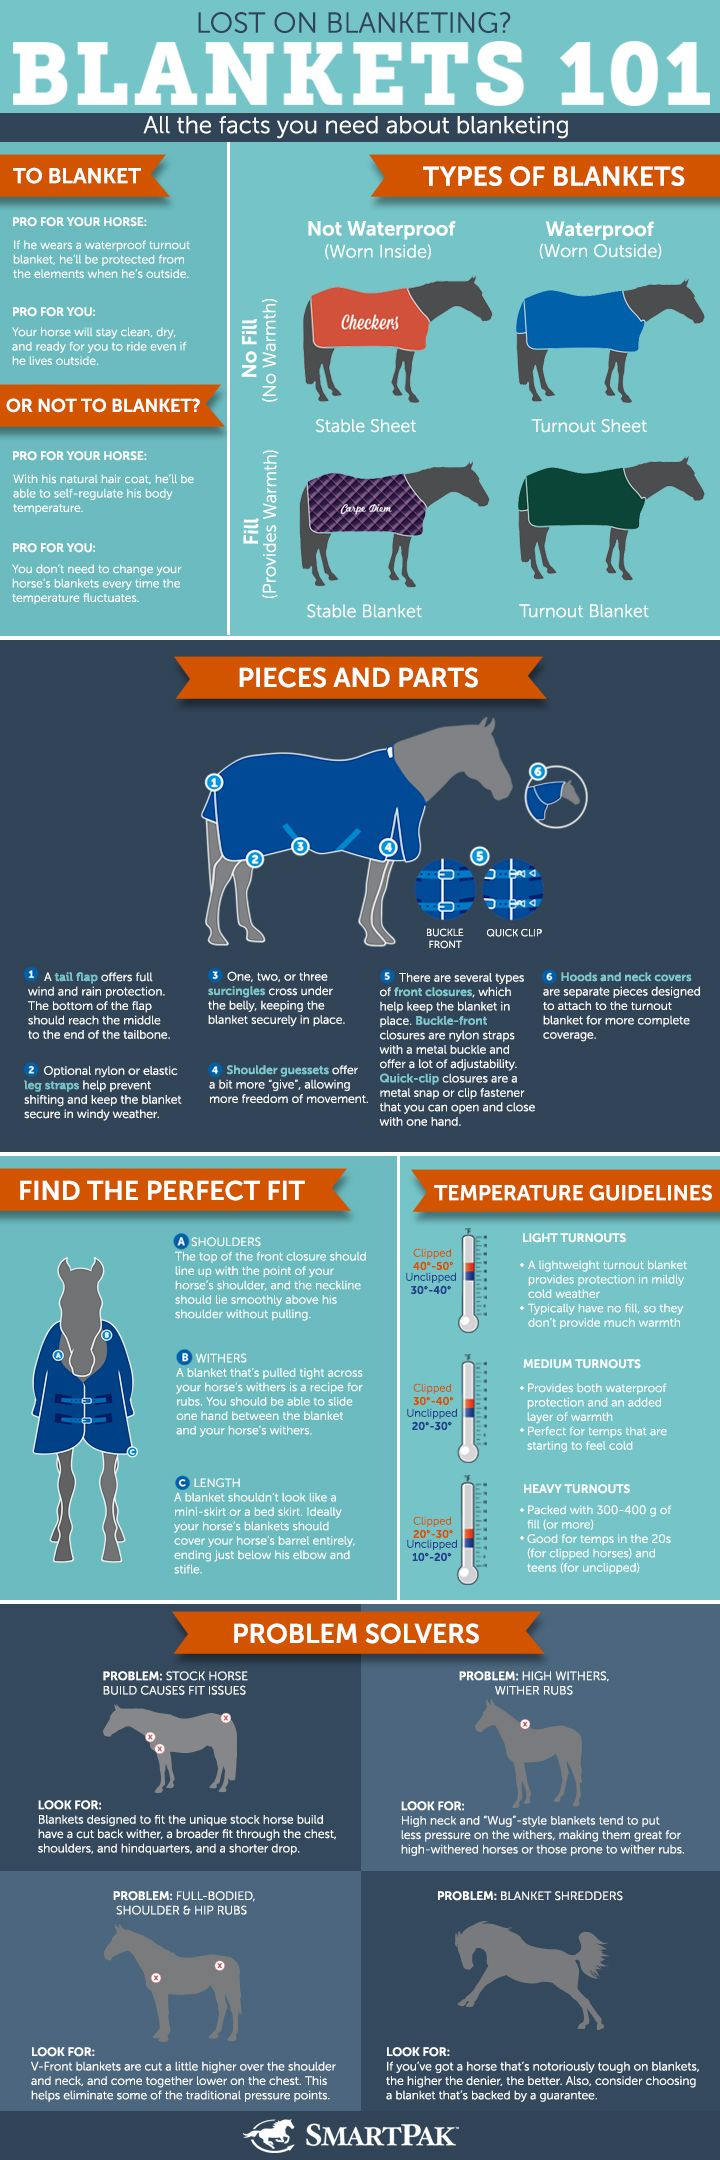 When To Blanket A Horse Temperature Guidelines Options And Types Explained In This Visual Guide Horse Care Horse Life Horse Barns